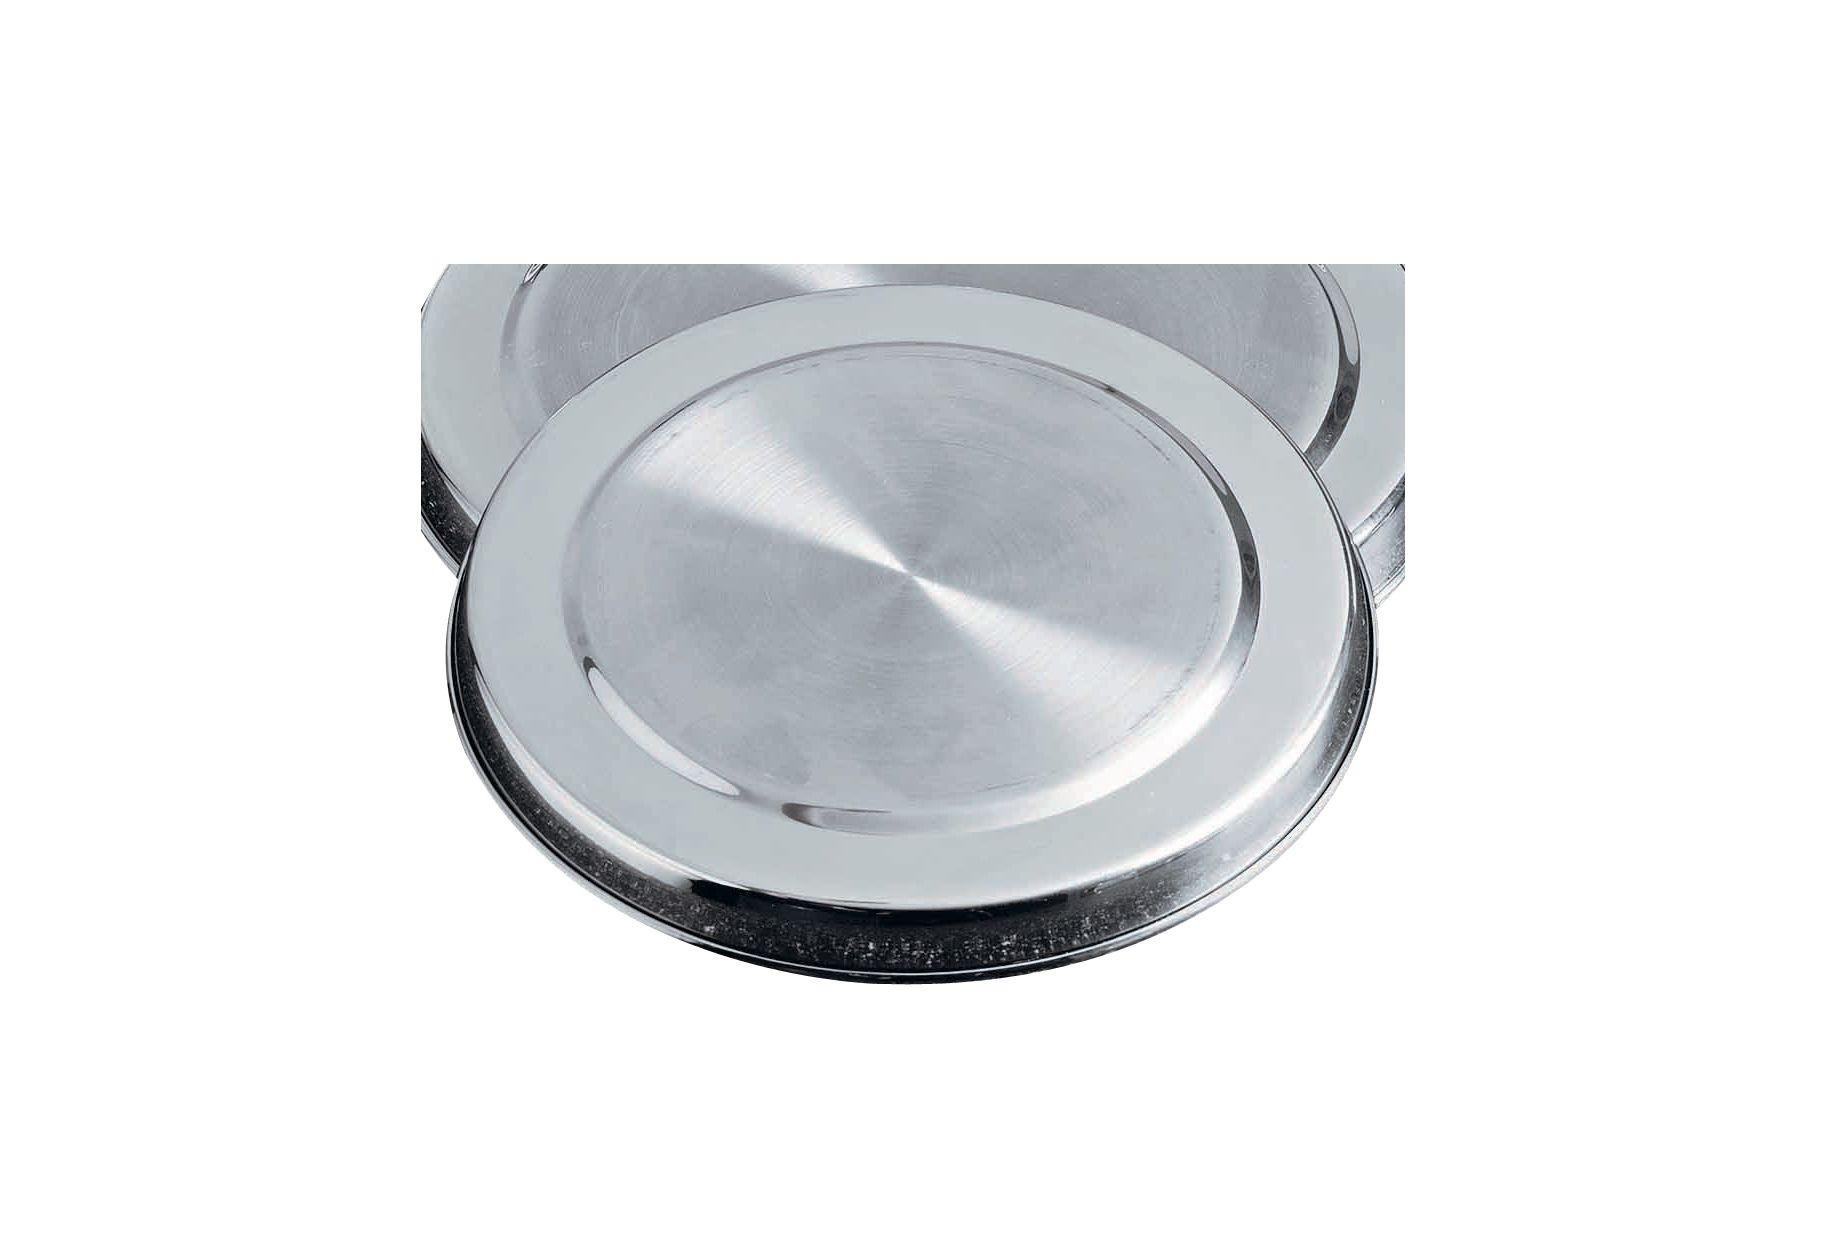 Image of HOME - Set of 4 Stainless Steel Hob Covers